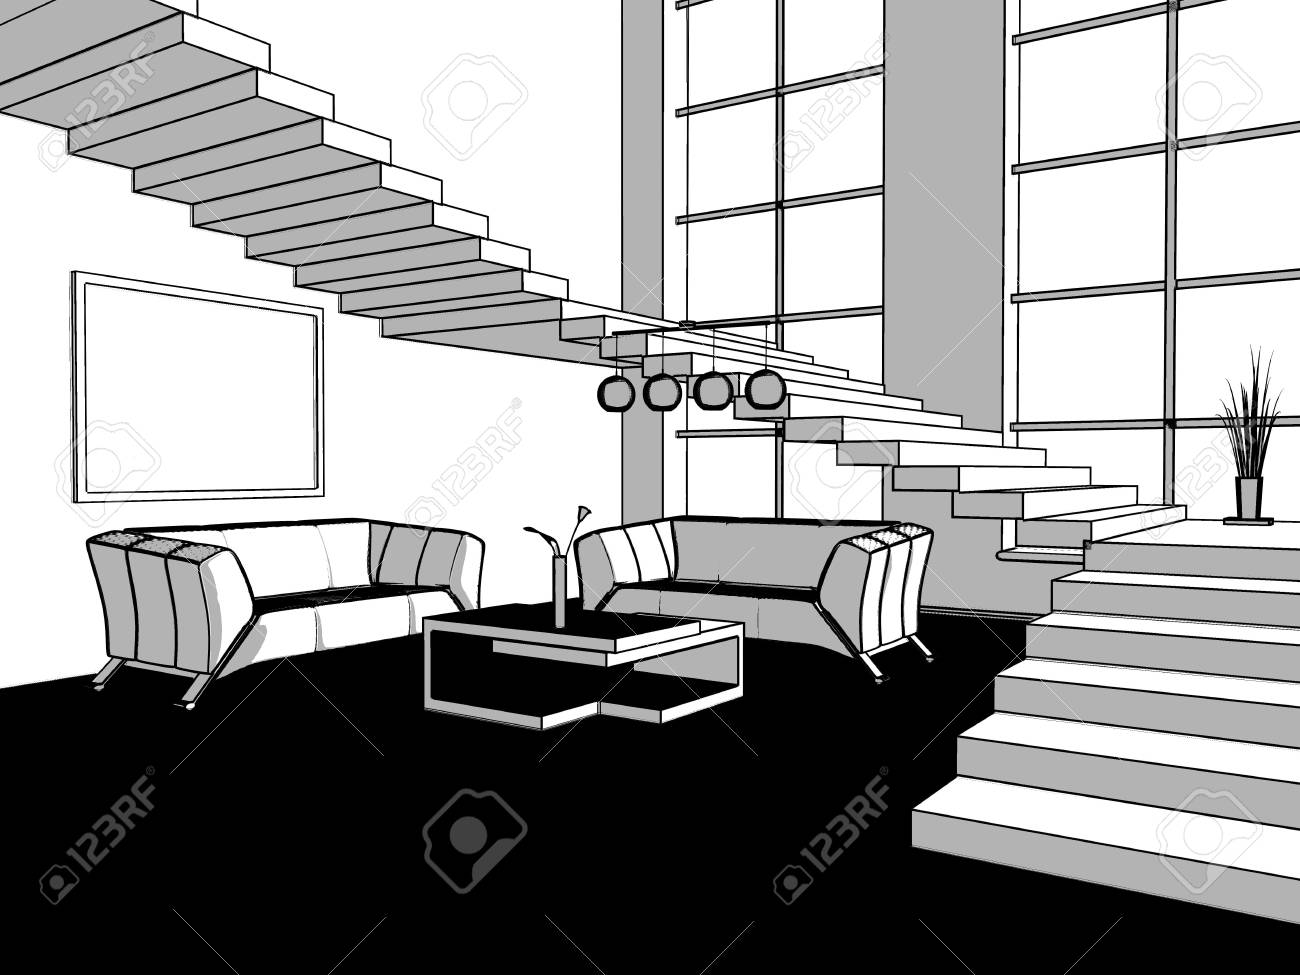 place for rest in office or apartment line image Stock Photo - 4832873